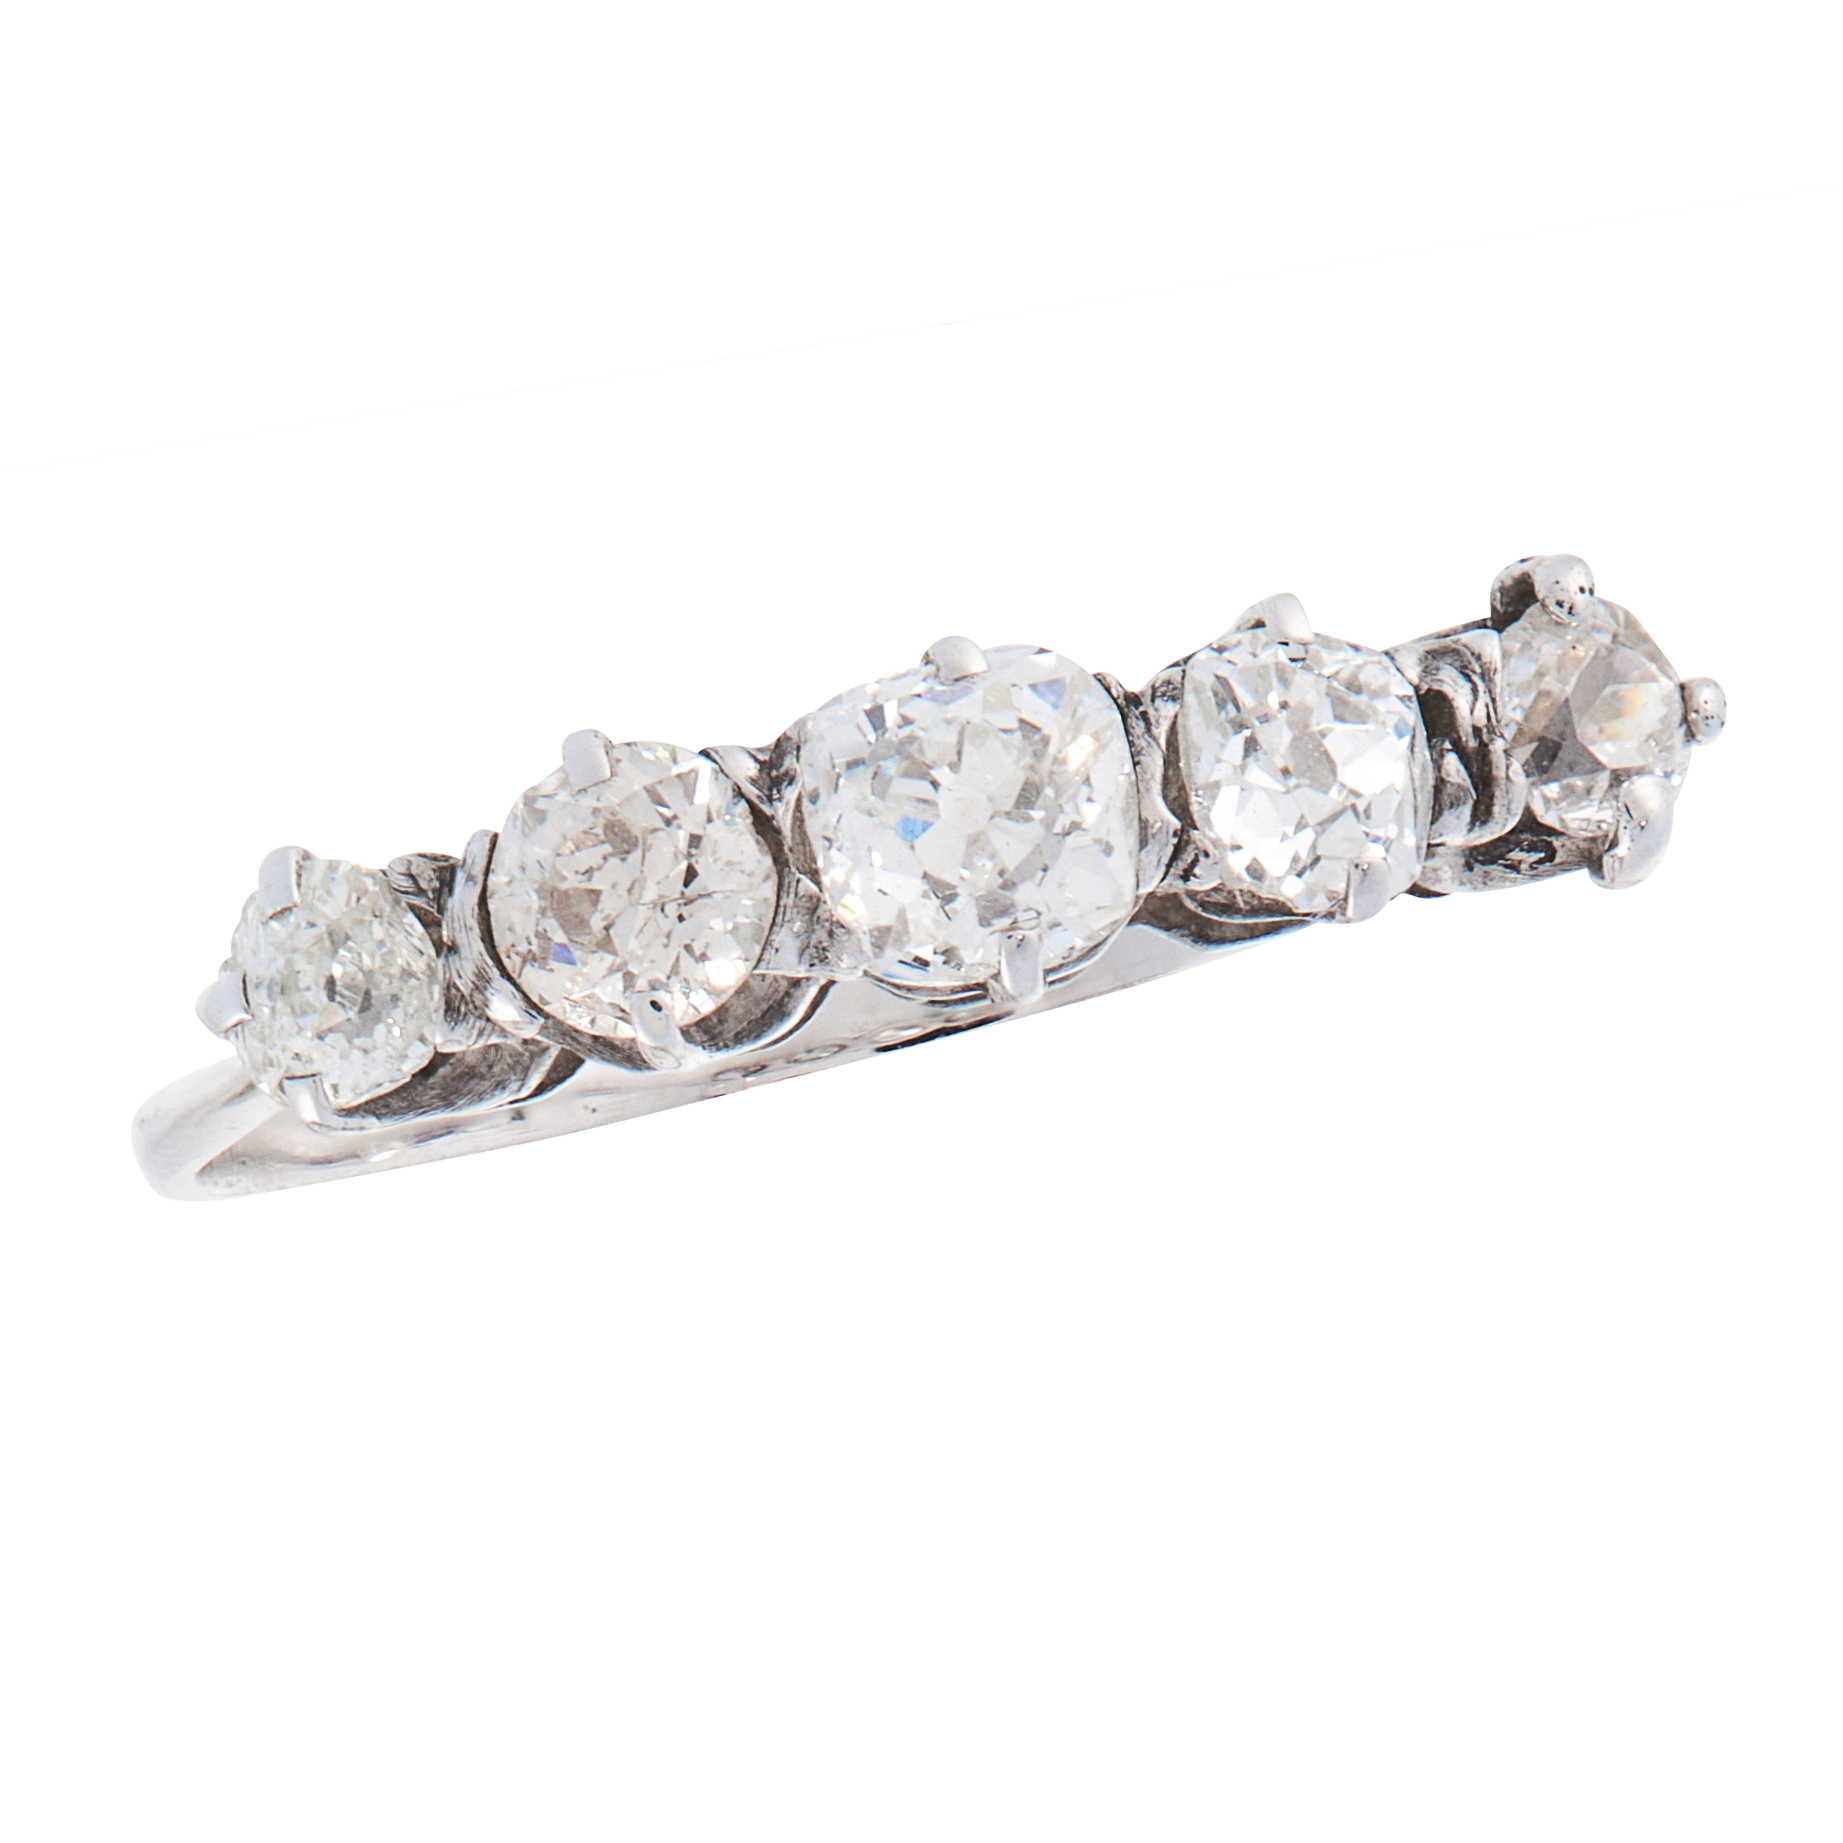 A DIAMOND DRESS RING, EARLY 20TH CENTURY in 18ct white gold, set with five graduated old cut